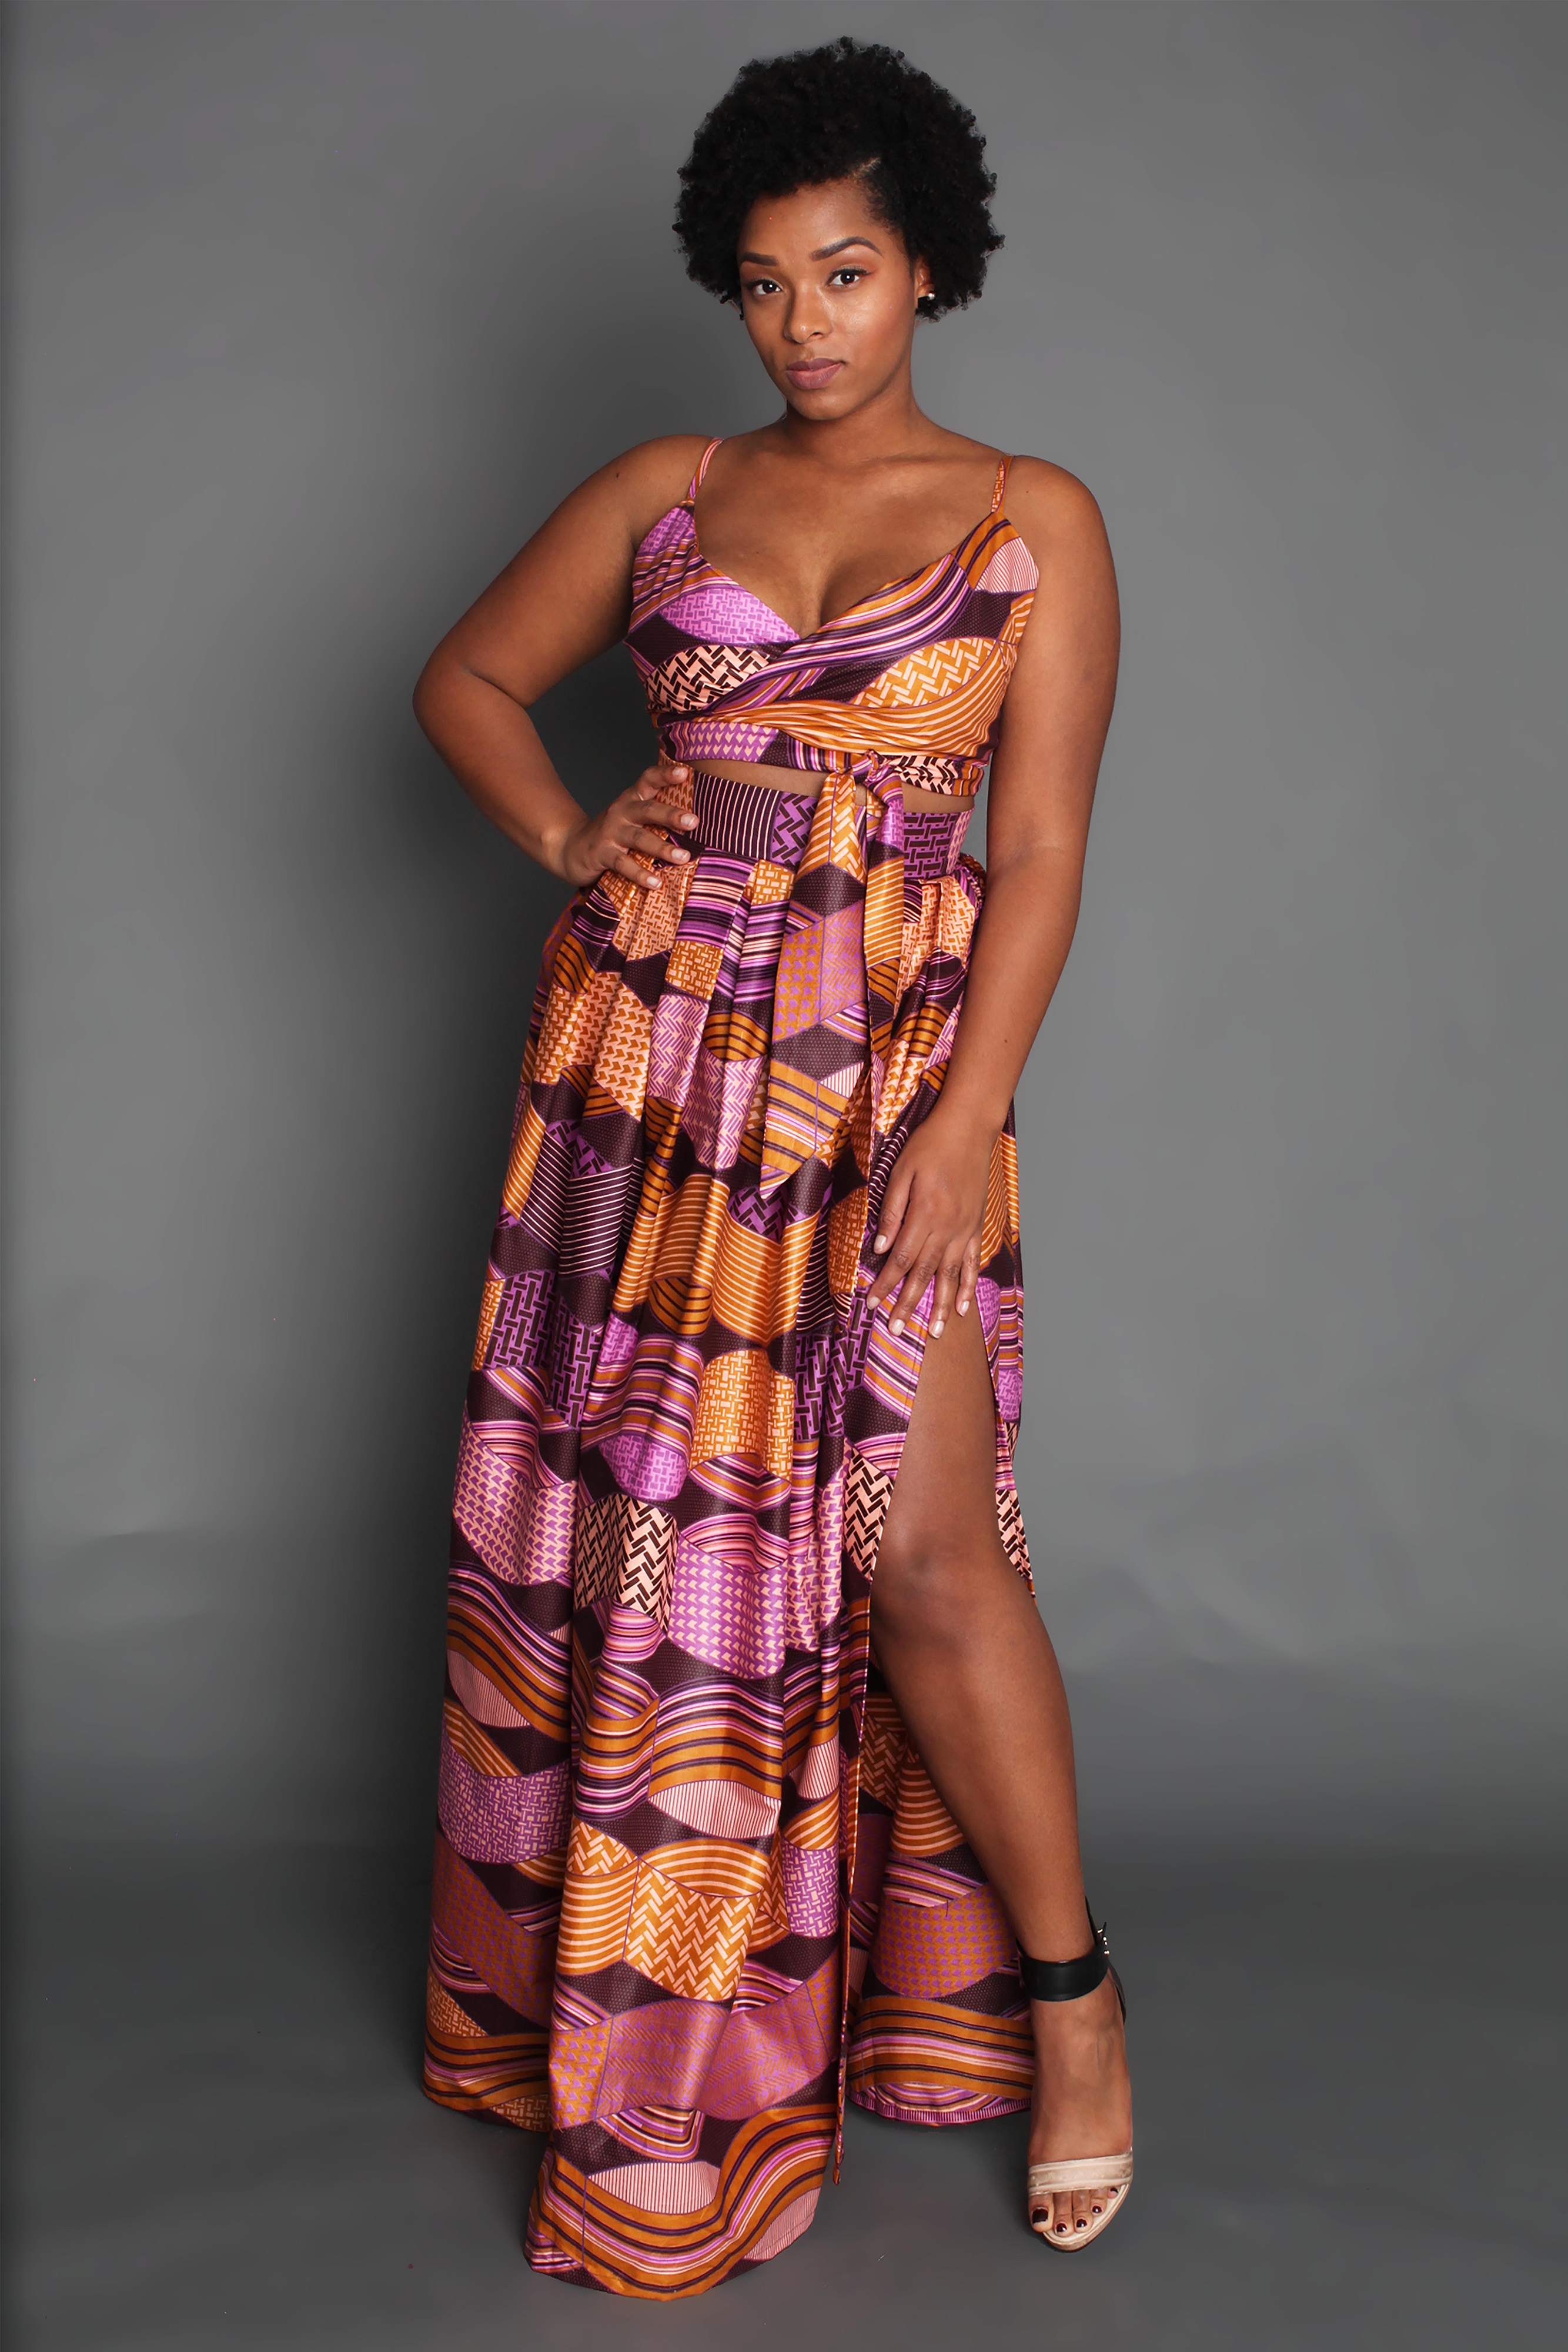 ankara-product-of-the-day-leila-and-zalinka-croptopmaxi-skirt-in-coral-and-purple-2